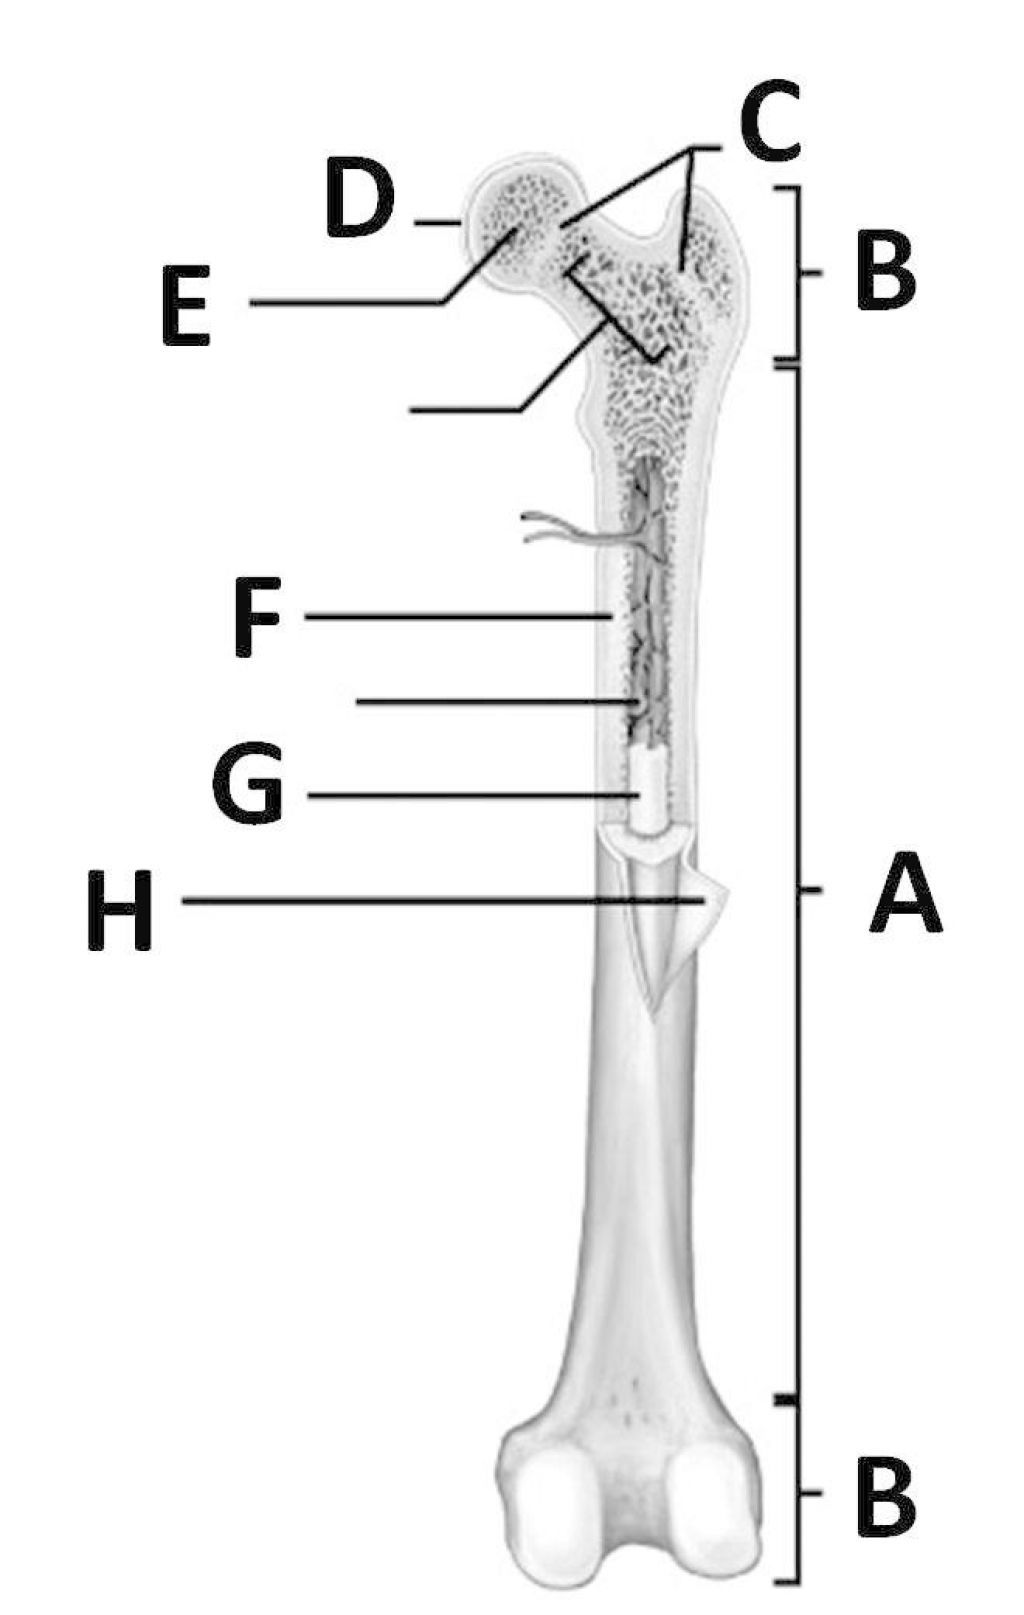 Long Bone Label The Structure The Long Bone And Labels